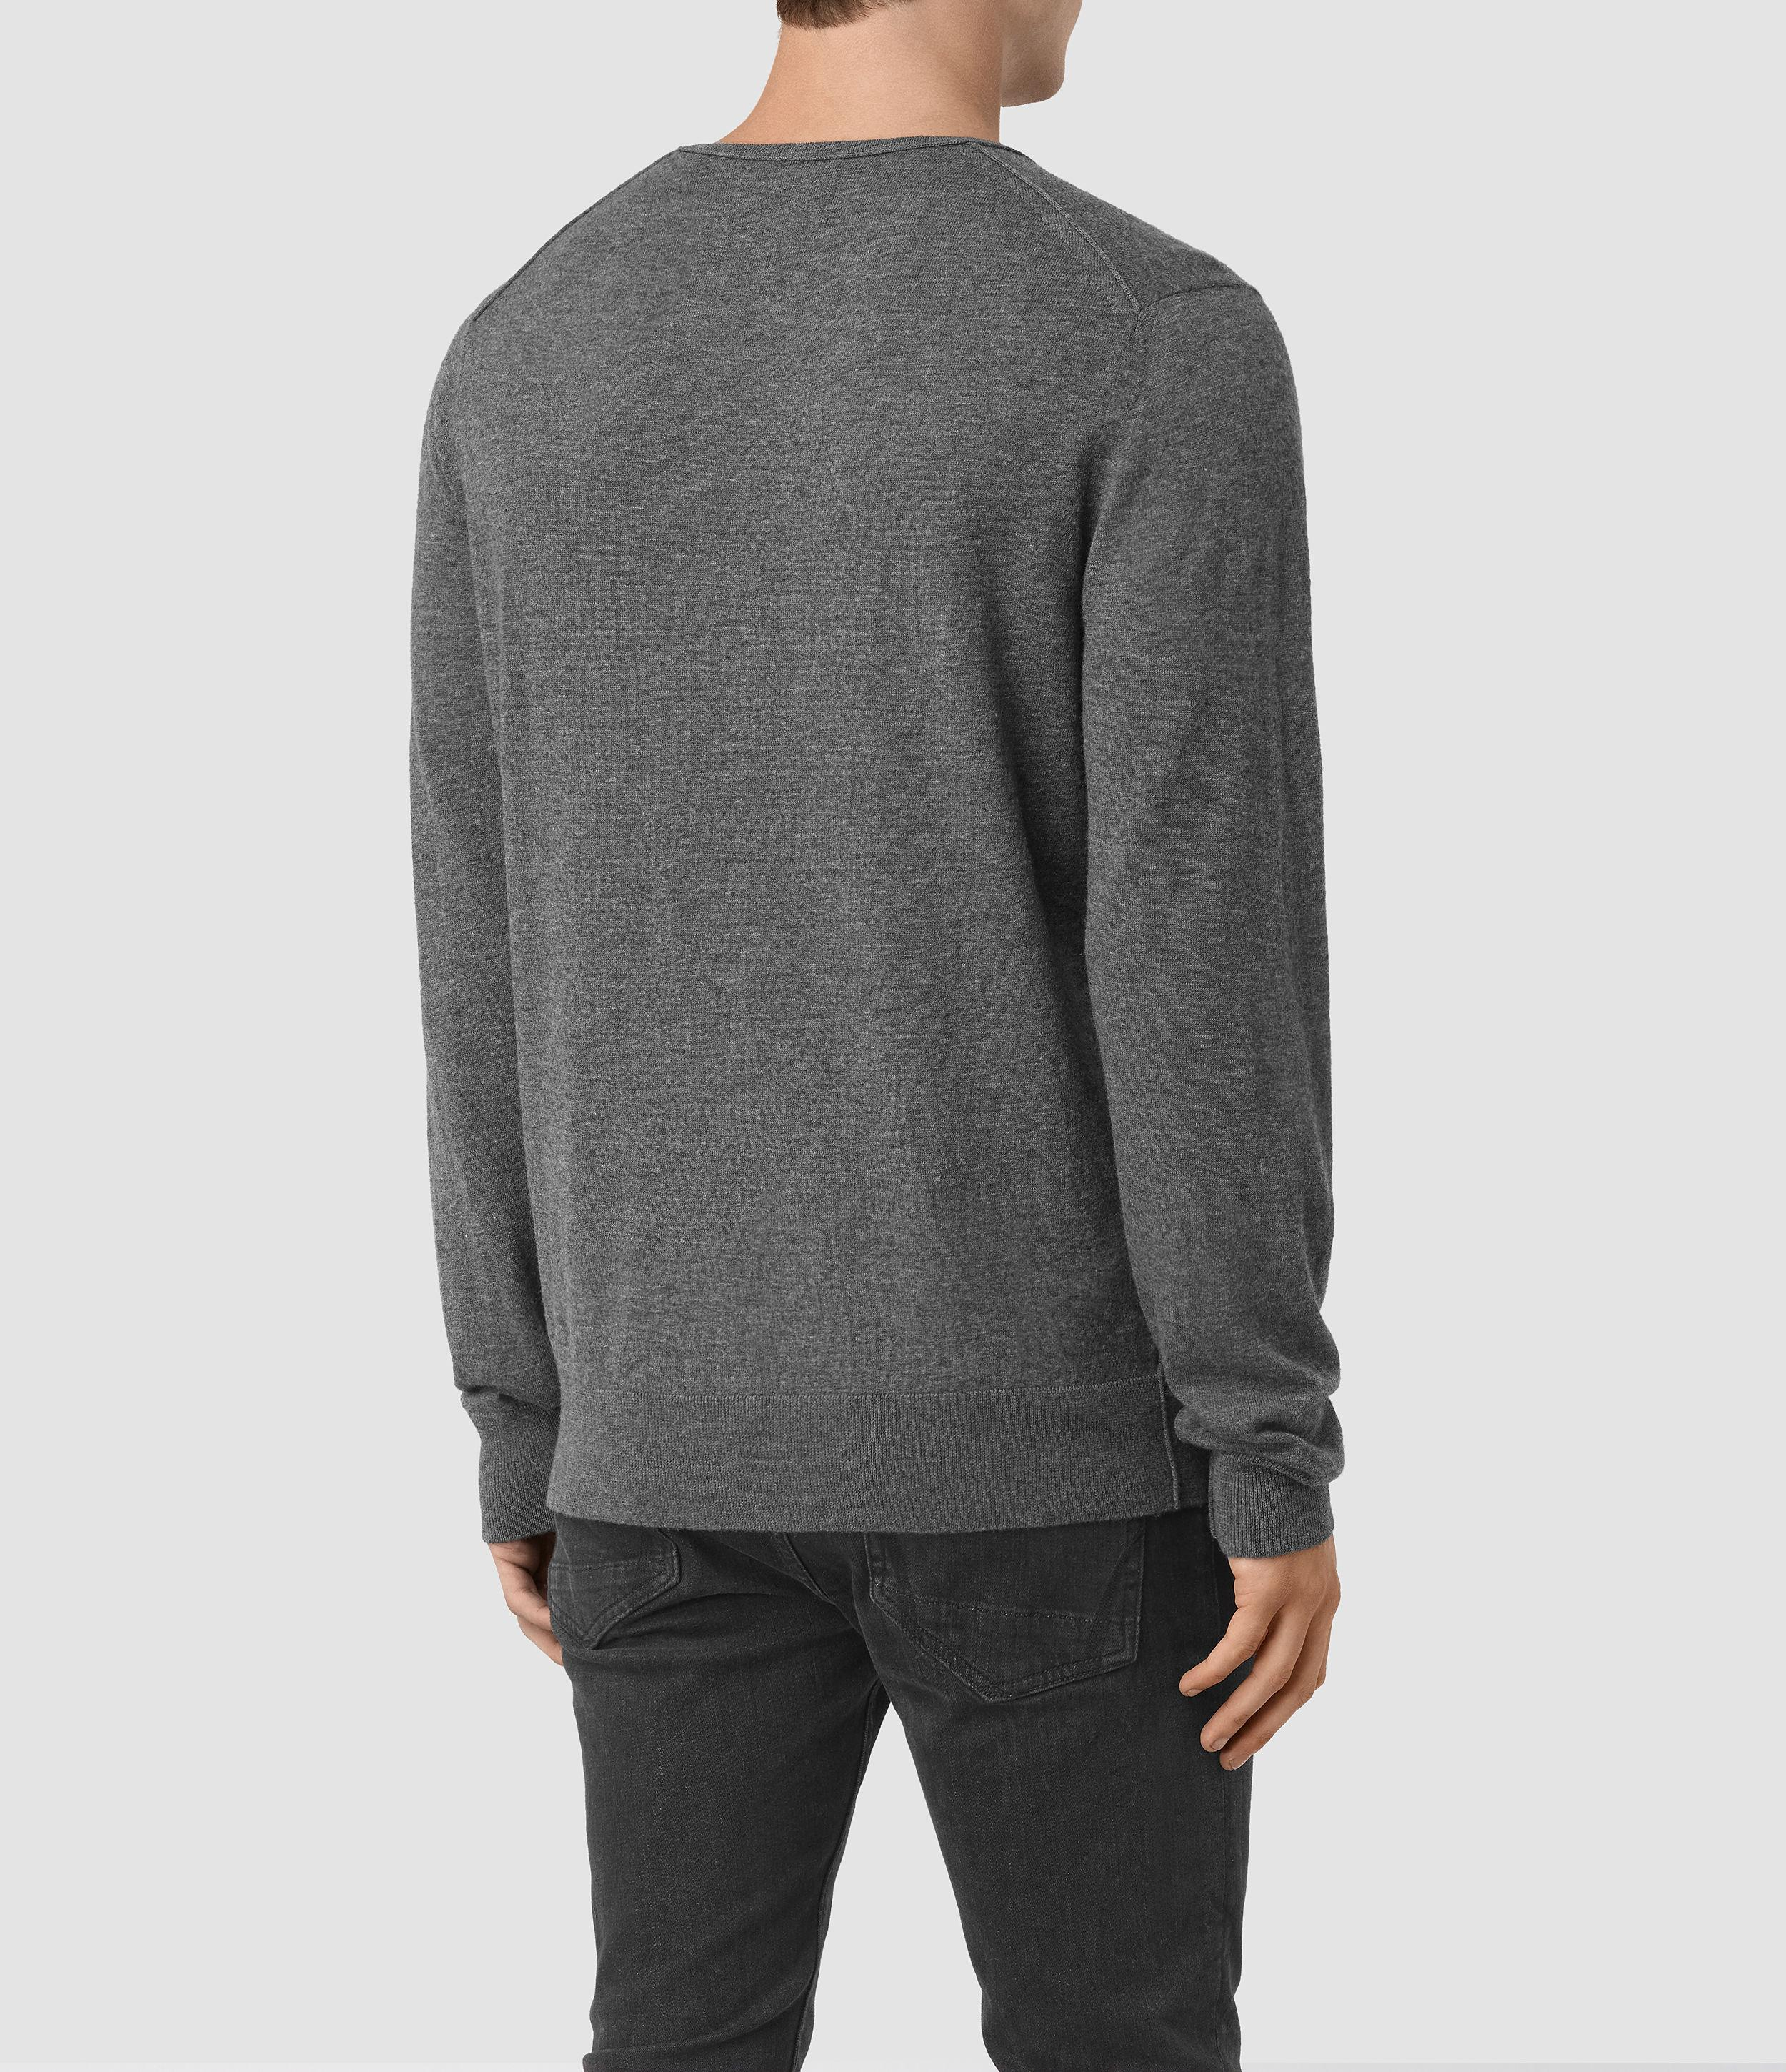 AllSaints Riviera Cashmere Crew Jumper in Charcoal Marl (Grey) for Men